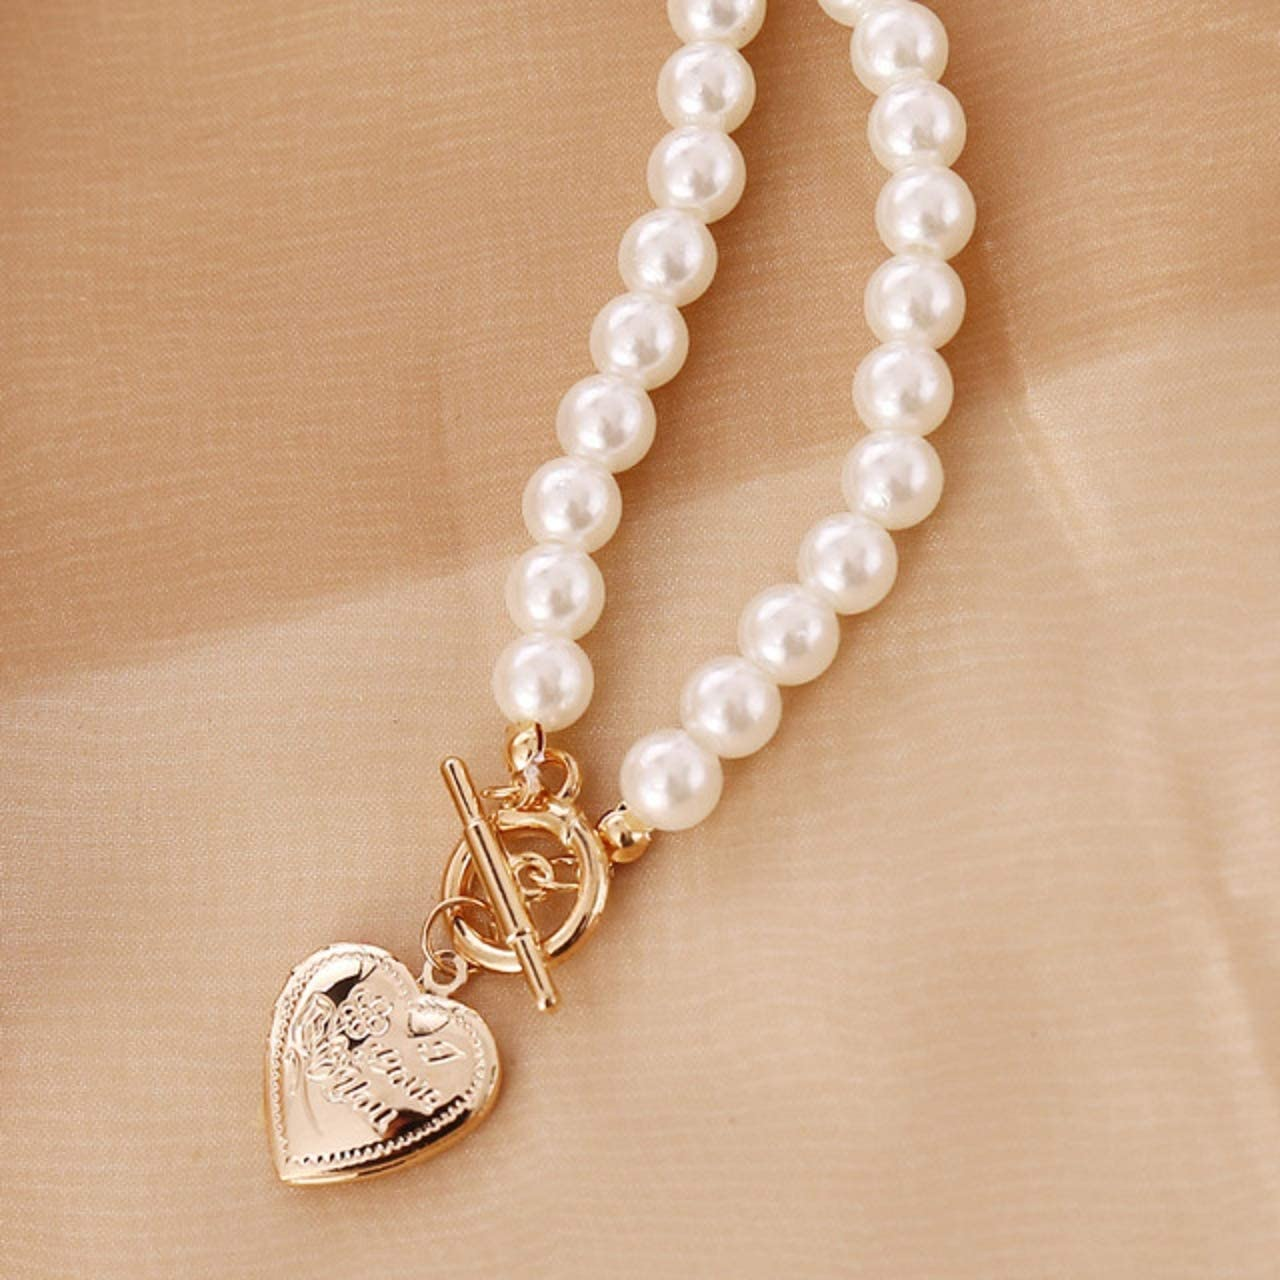 Wcysin Fashion Pearl Necklace Women Choker Necklace with Gold Heart Pendant